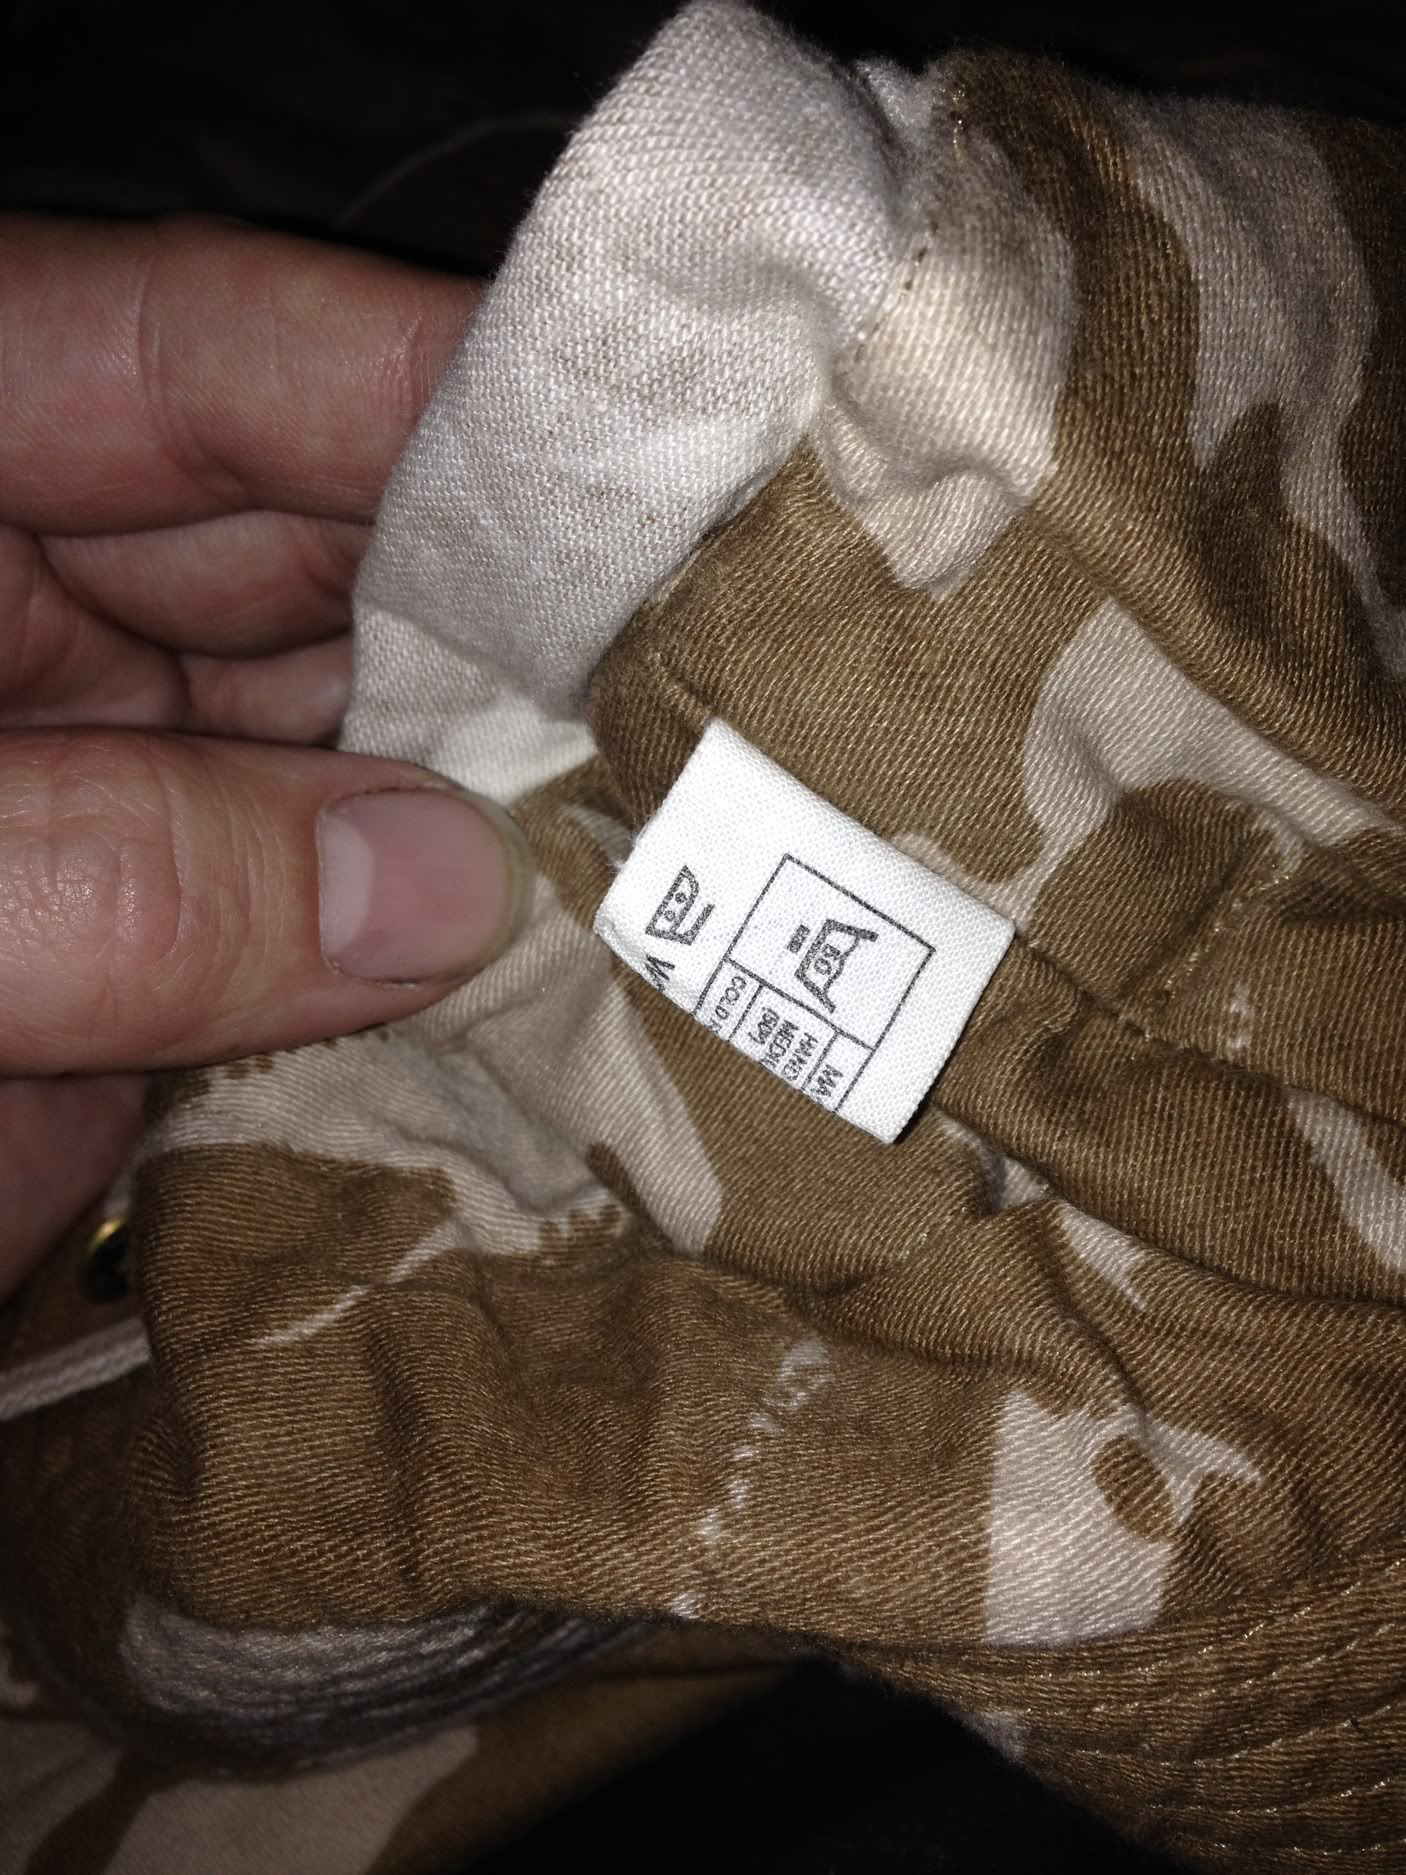 British Jacket lightweight-Gulf War. - Page 3 Null_zps74622d84